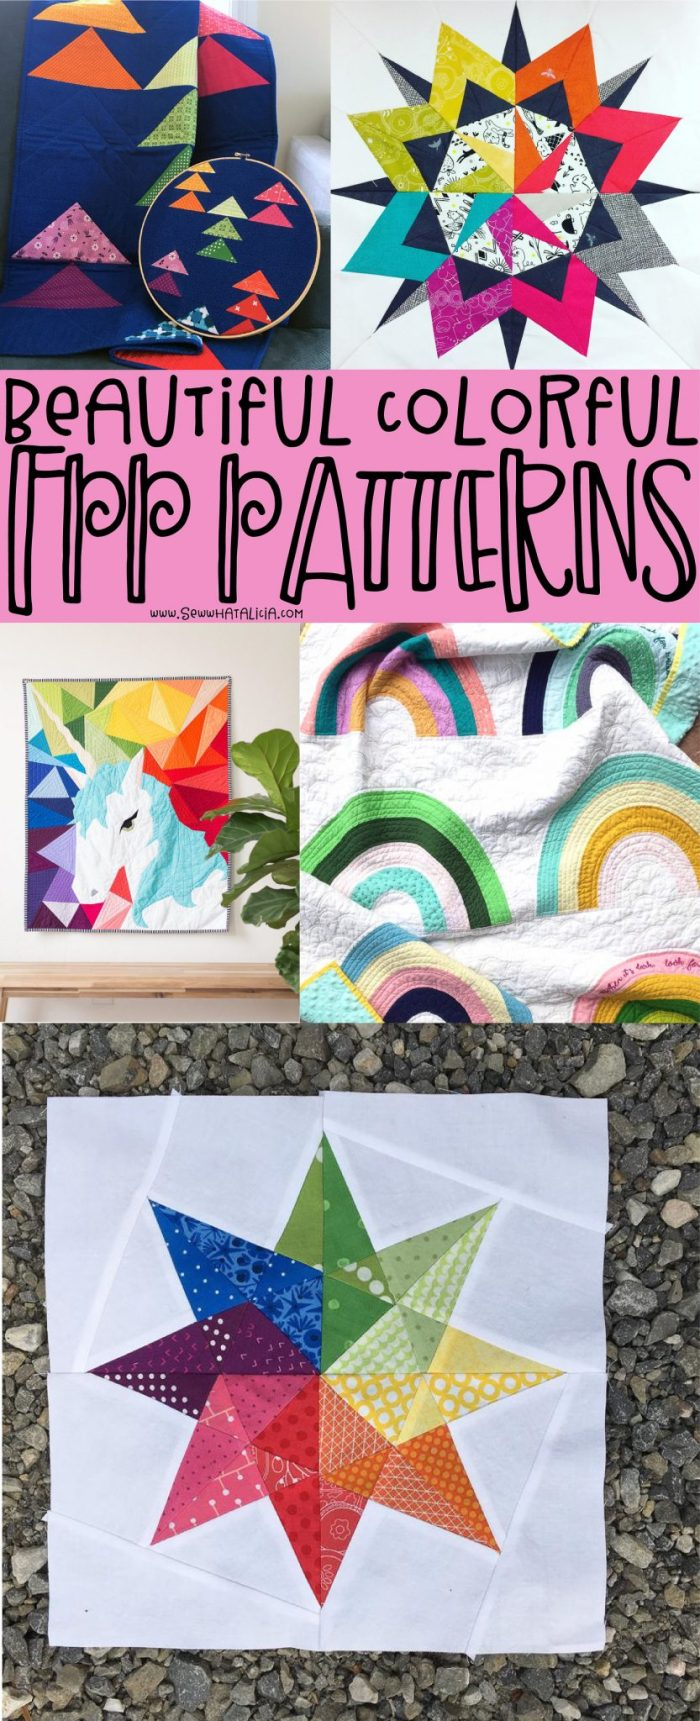 pictured multiple colorful quilt blocks